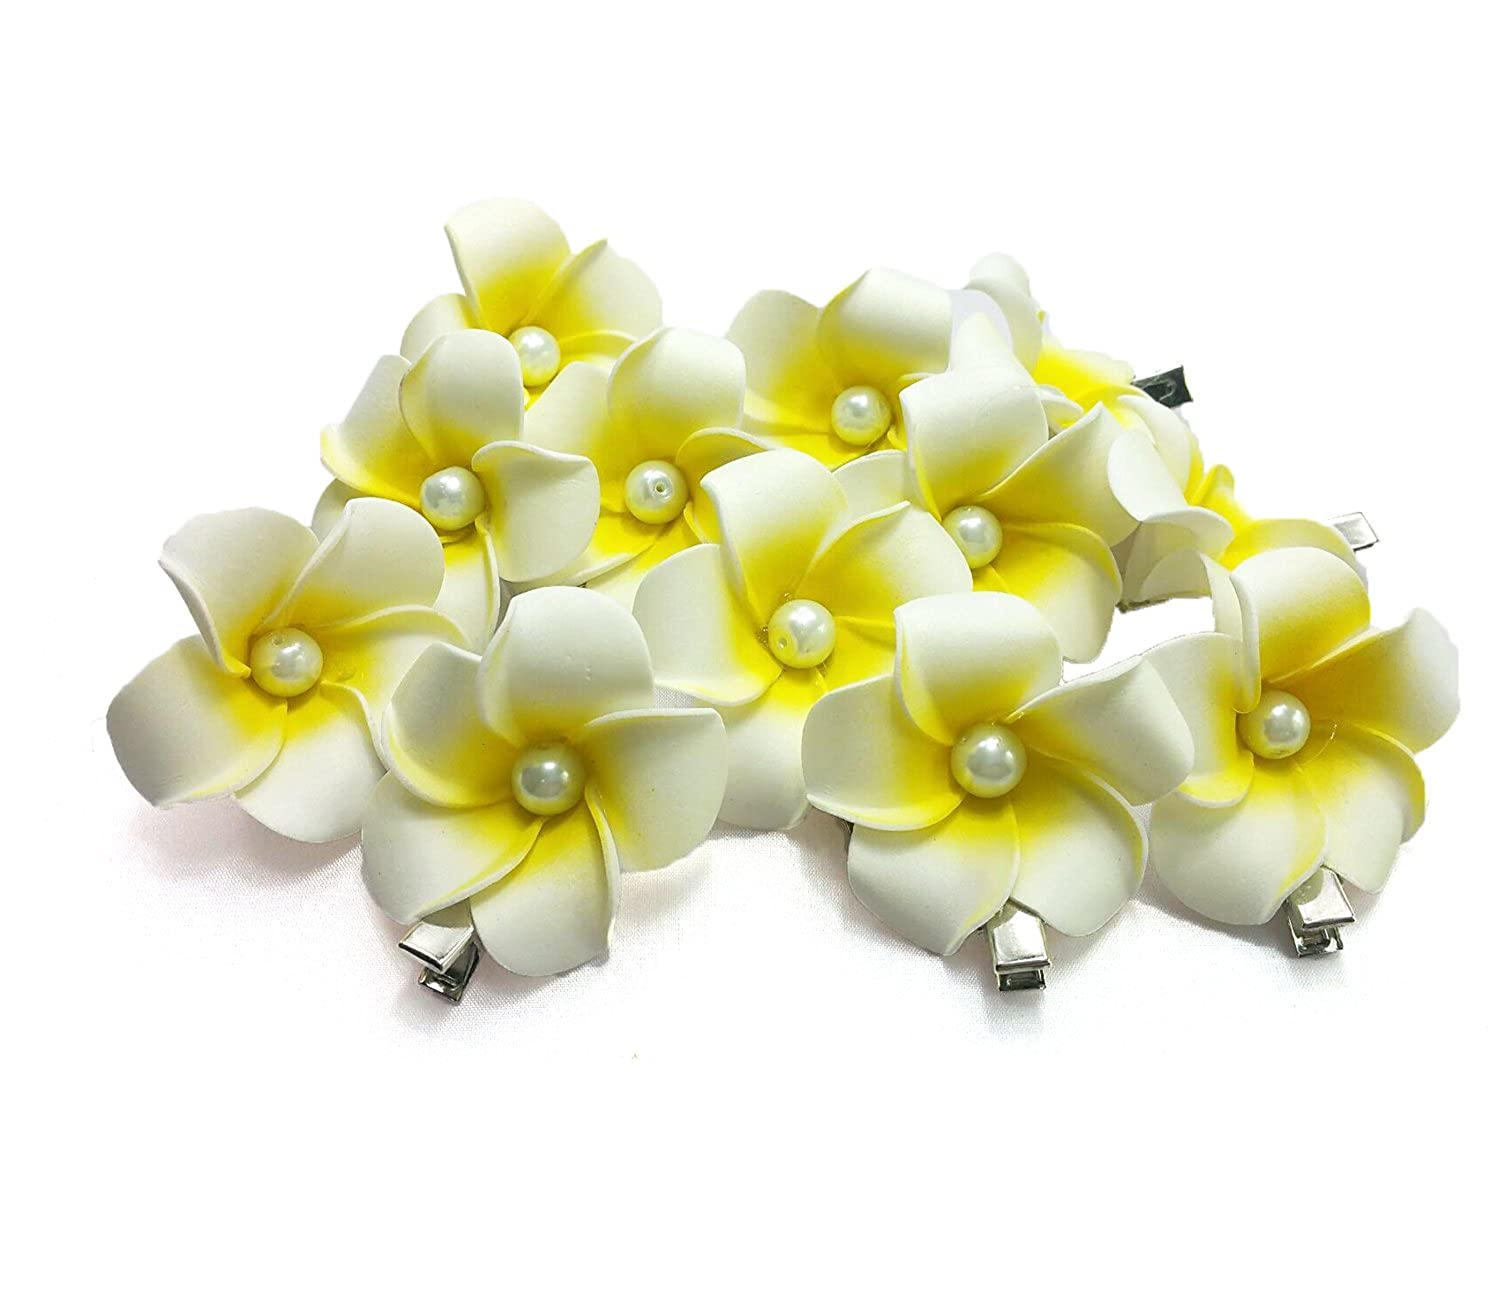 DreamLily Womens Fashion 3 Pcs Hawaiian White Plumeria Flower